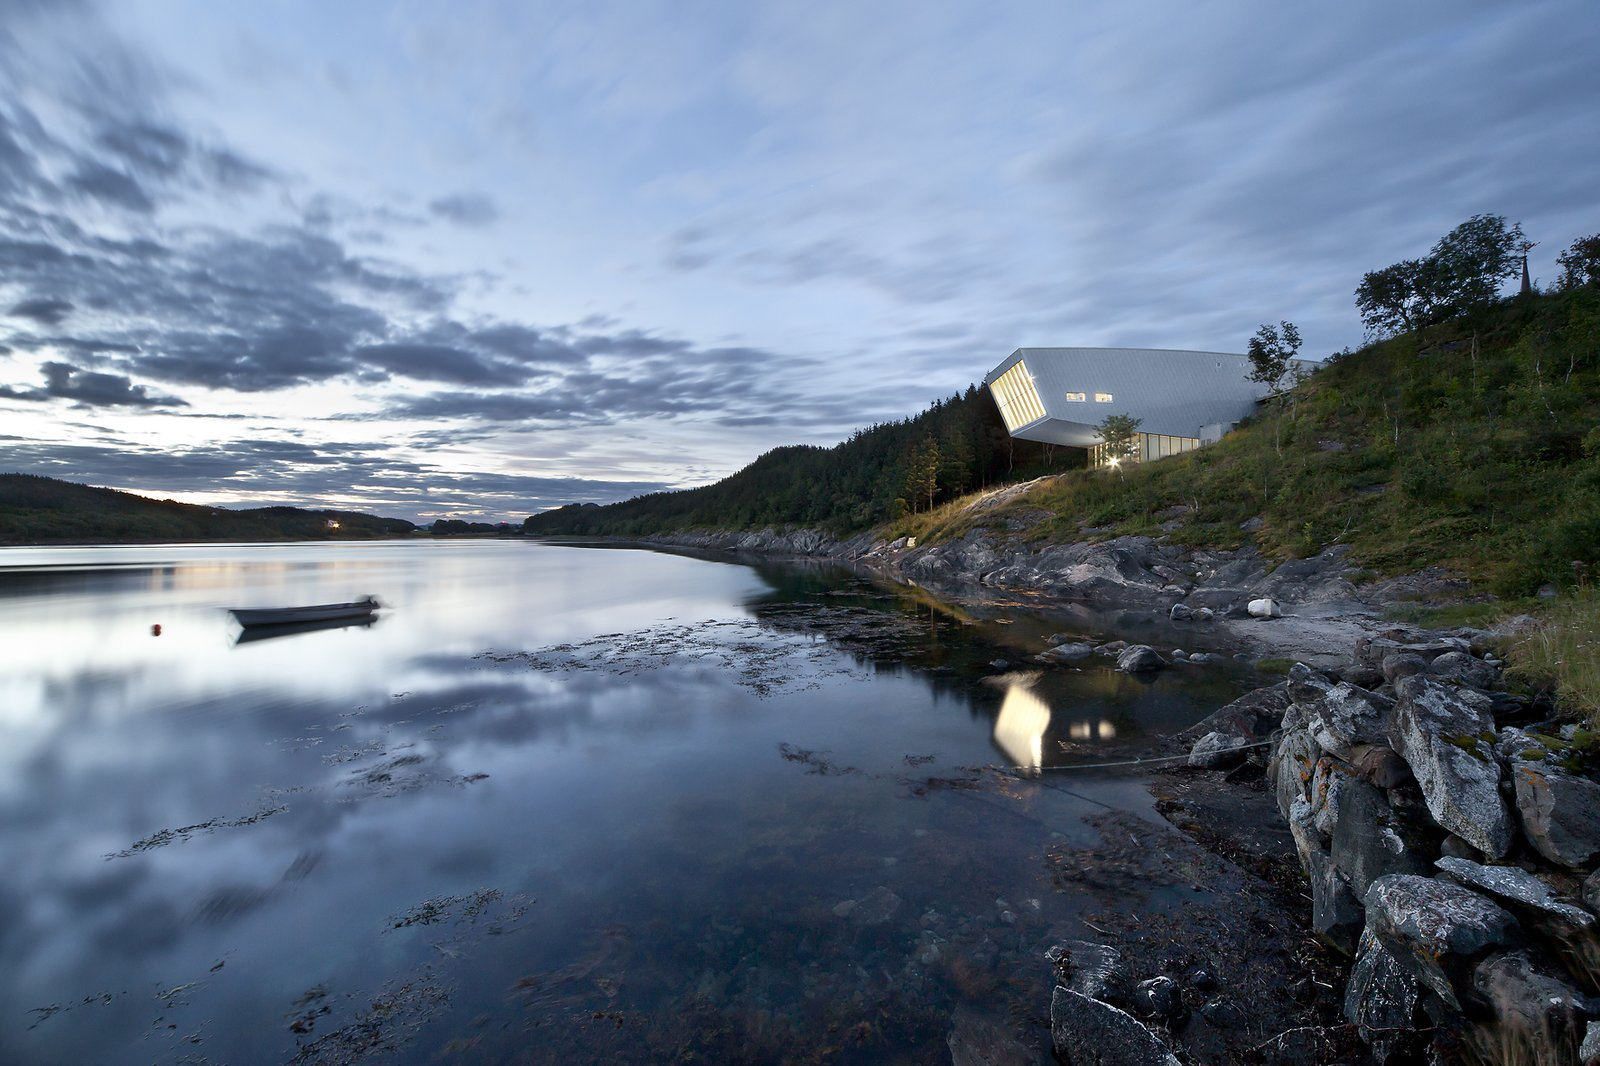 """""""The project is a tribute to the majesty of nature and to the people of Norway,"""" says Schluchtmann, """"who not only settled on and cultivated this land, but also have the courage and the taste to add something to these special places that puts the crowning touch on the whole thing.""""  Photo 5 of 5 in Stunning Photographs of the Norwegian Landscape"""